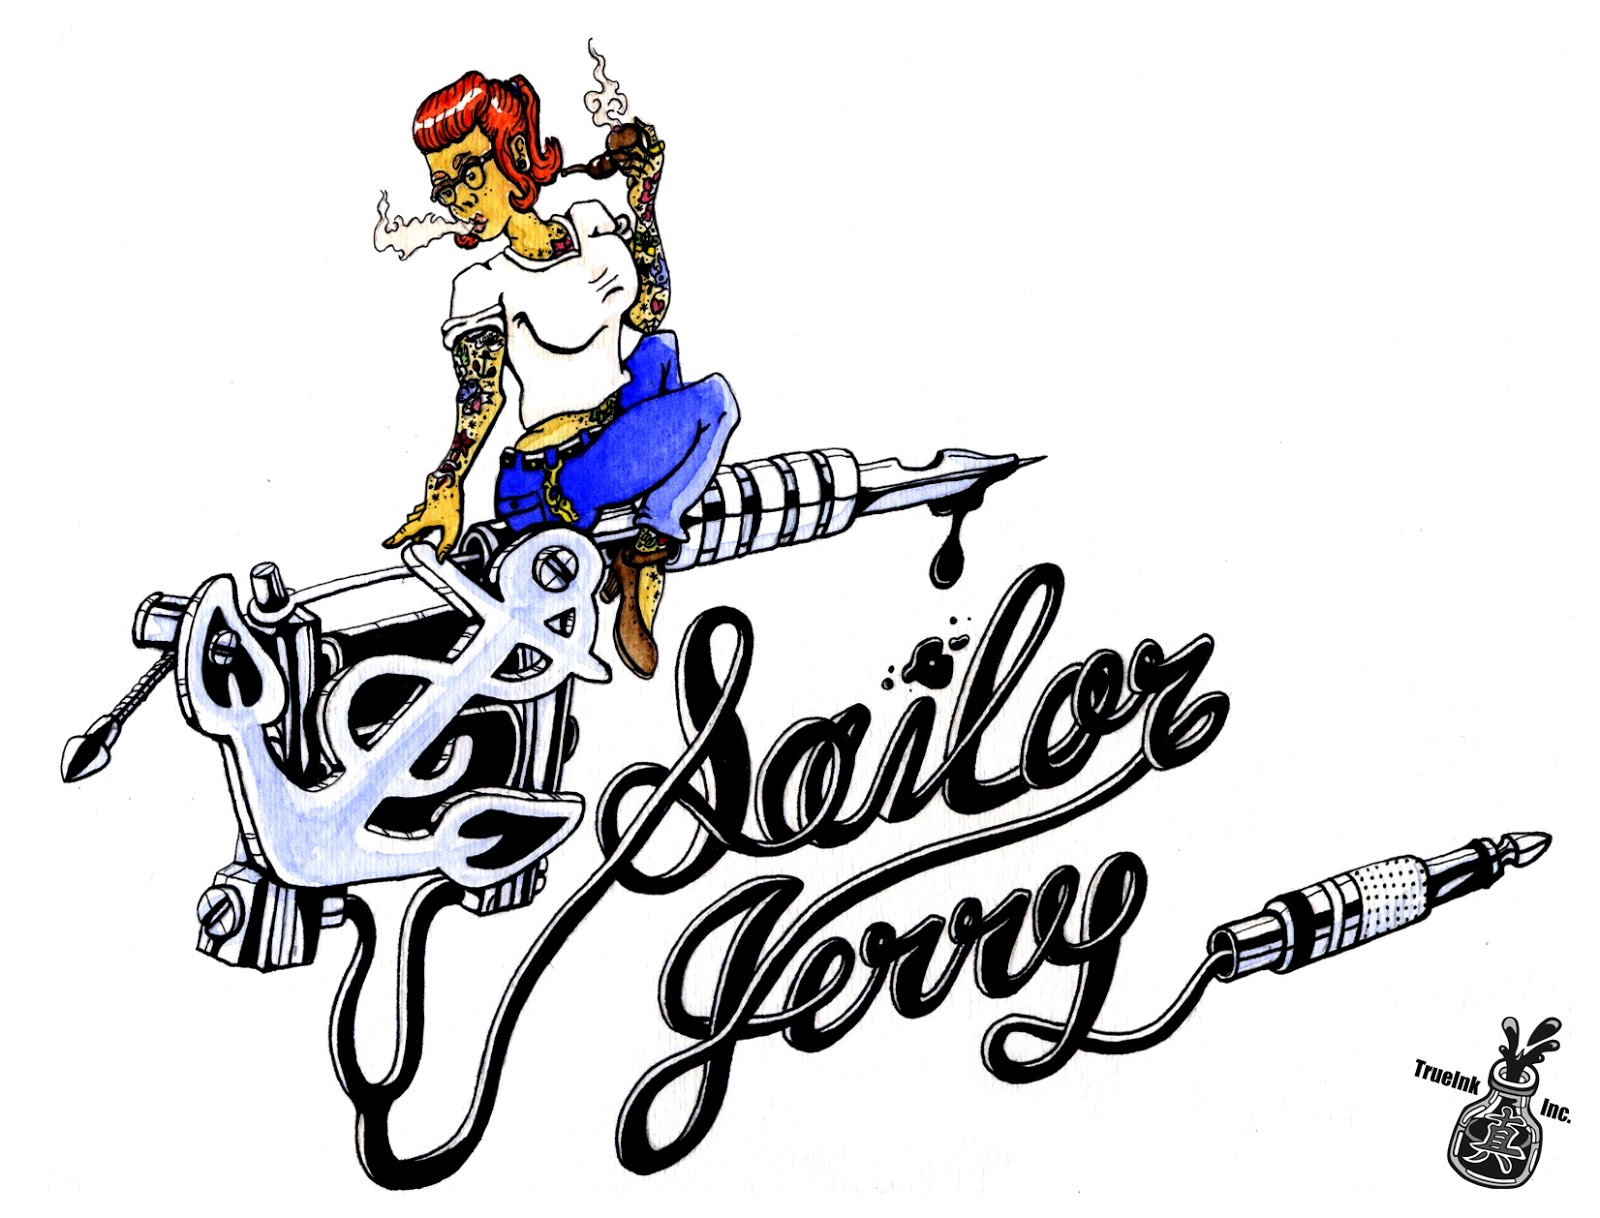 Trueink incorporated sailor jerry pin up for Sailor jerry pin up tattoos